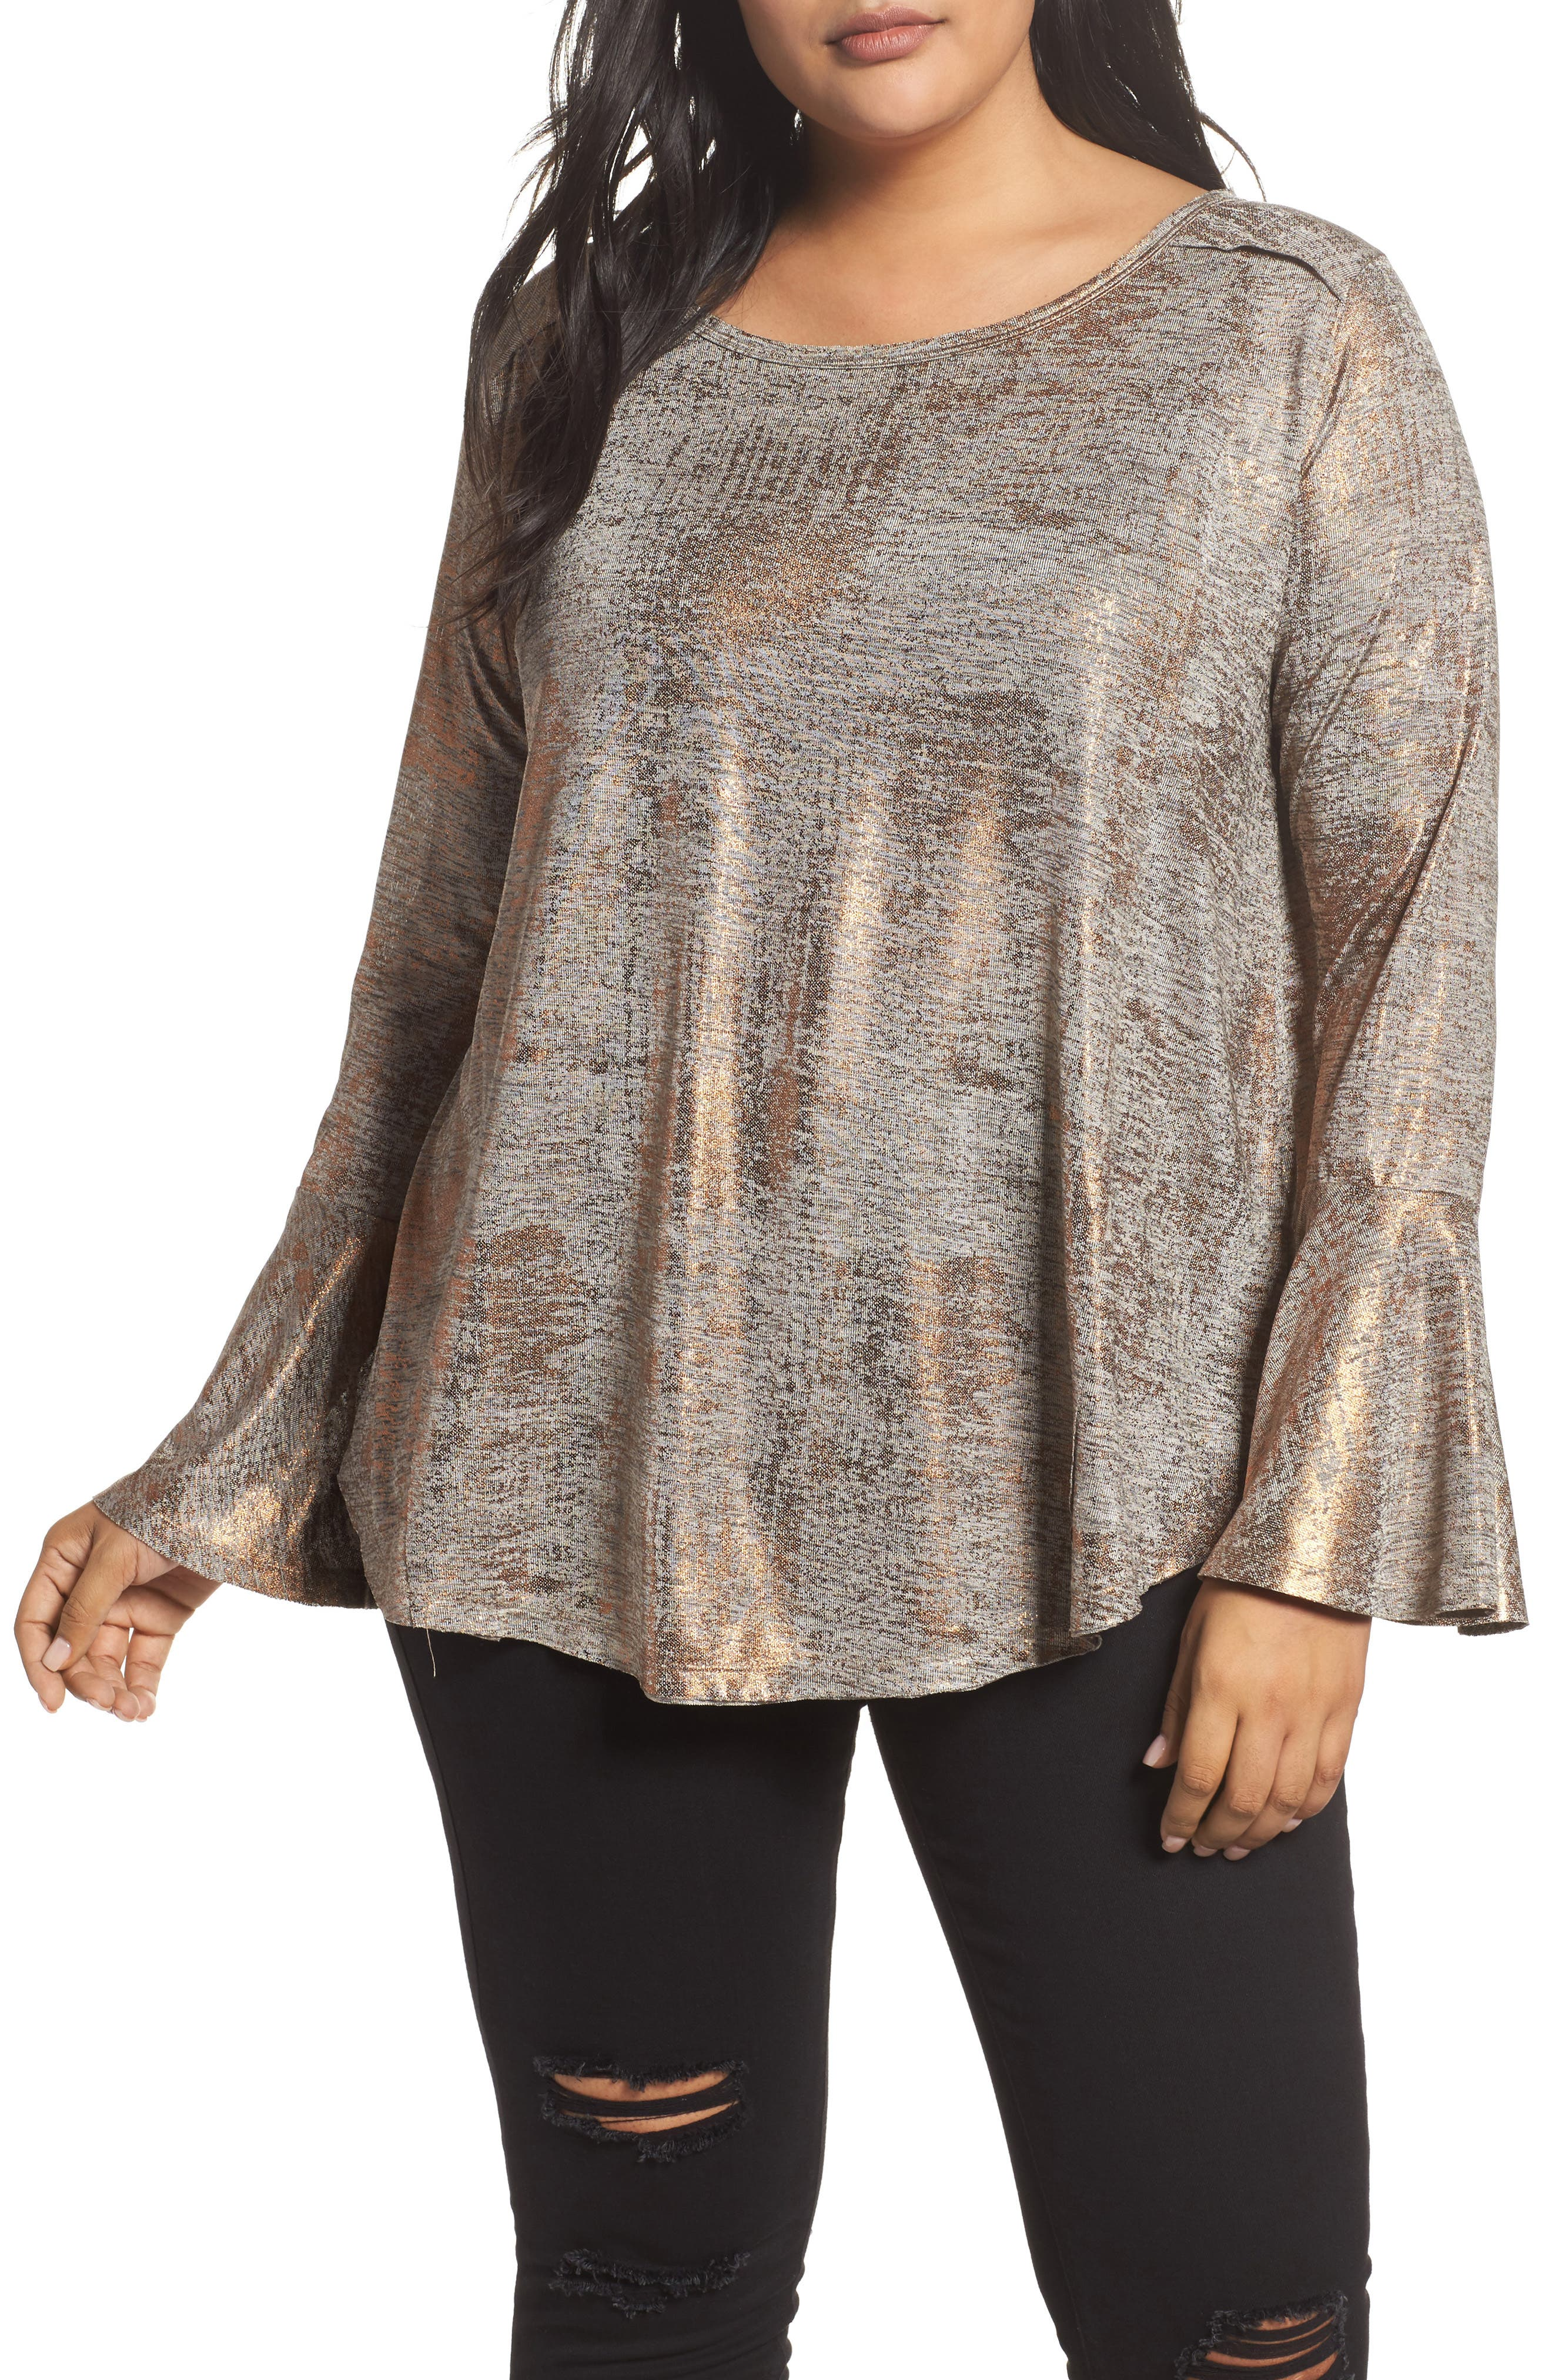 Bell Cuff Foiled Knit Top,                             Main thumbnail 1, color,                             233